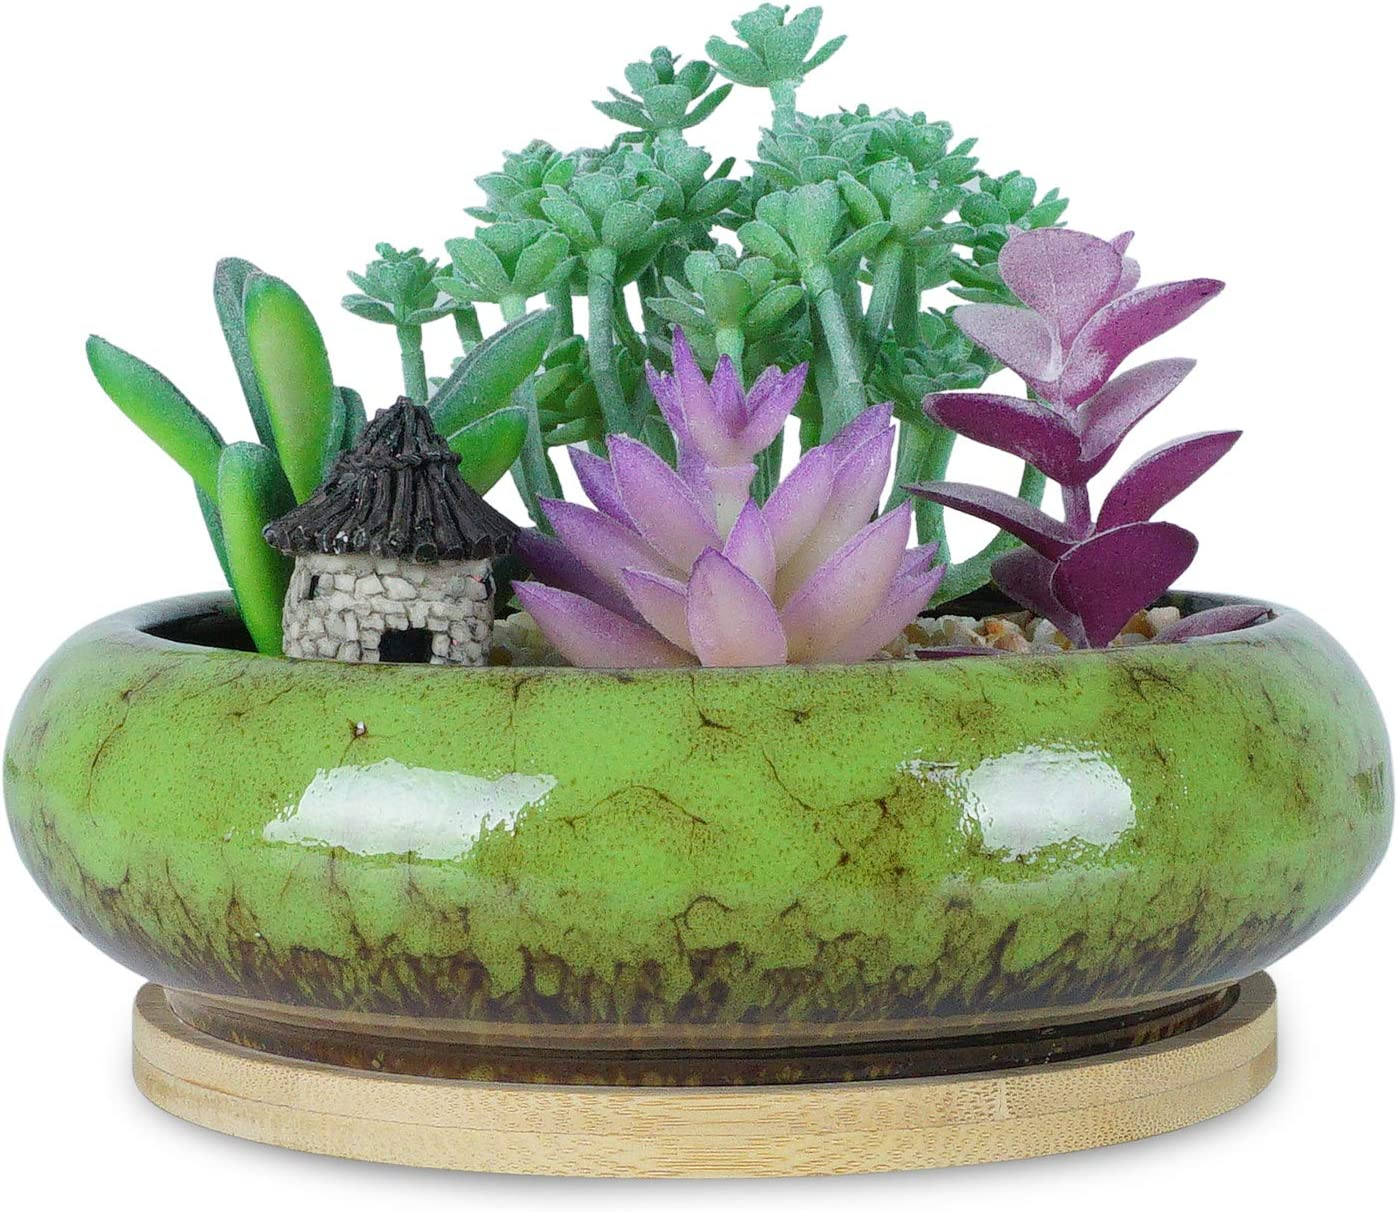 ARTKETTY 6.1 inch Round Succulent Planter Pots with Drainage Hole Bonsai Pots Garden Decorative Cactus Stand Ceramic Glazed Flower Container Bowl Green, with Bamboo Tray